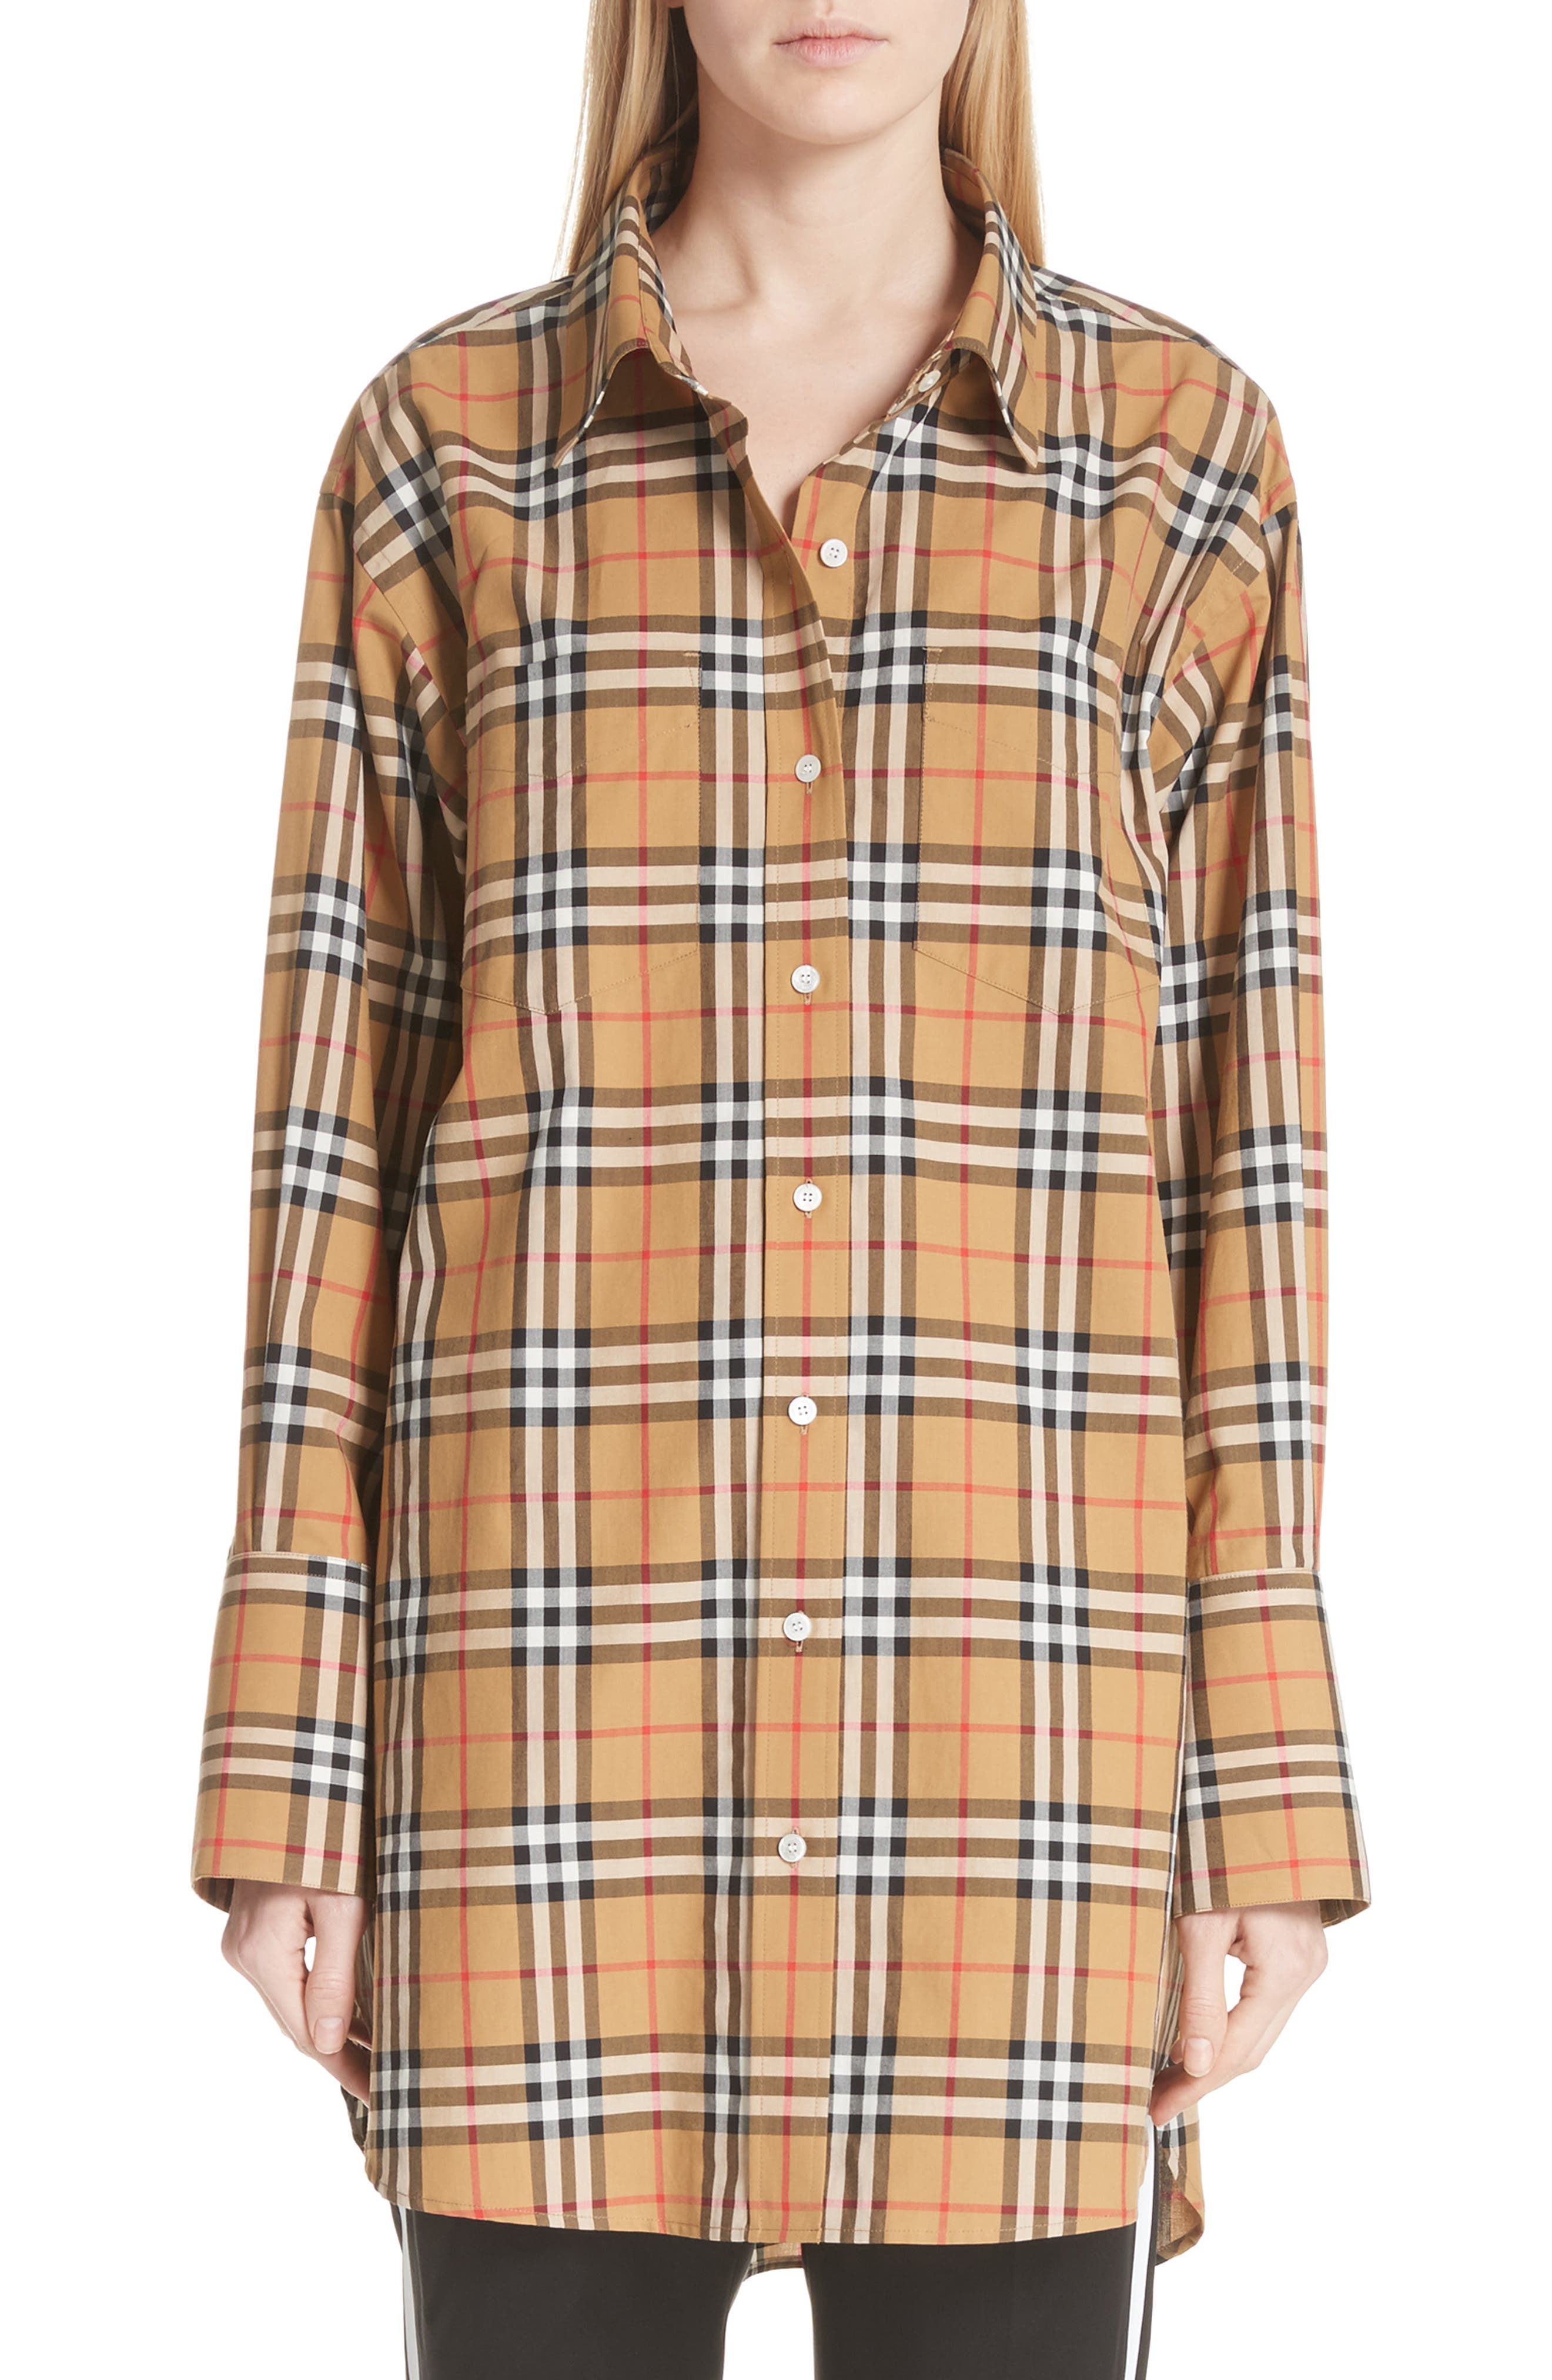 BURBERRY, Redwing Vintage Check Cotton Shirt, Main thumbnail 1, color, ANTIQUE YELLOW